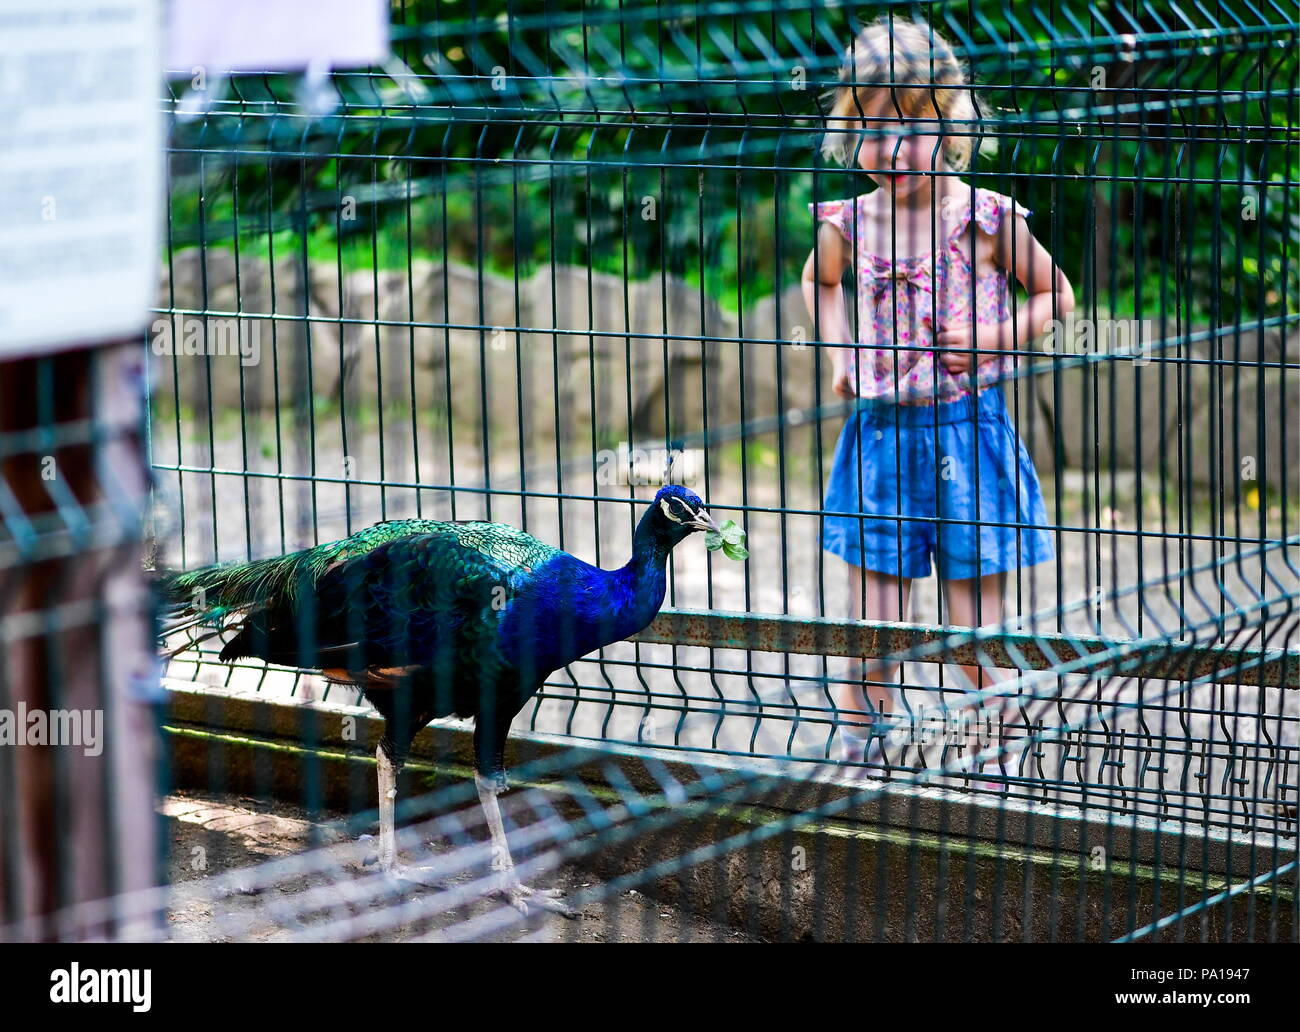 Vladivostok, Russia. 20th July, 2018. VLADIVOSTOK, RUSSIA - JULY 20, 2018: A girl looks at a peacock in an enclosure at the Sadgorod zoo. Yuri Smityuk/TASS Credit: ITAR-TASS News Agency/Alamy Live News - Stock Image